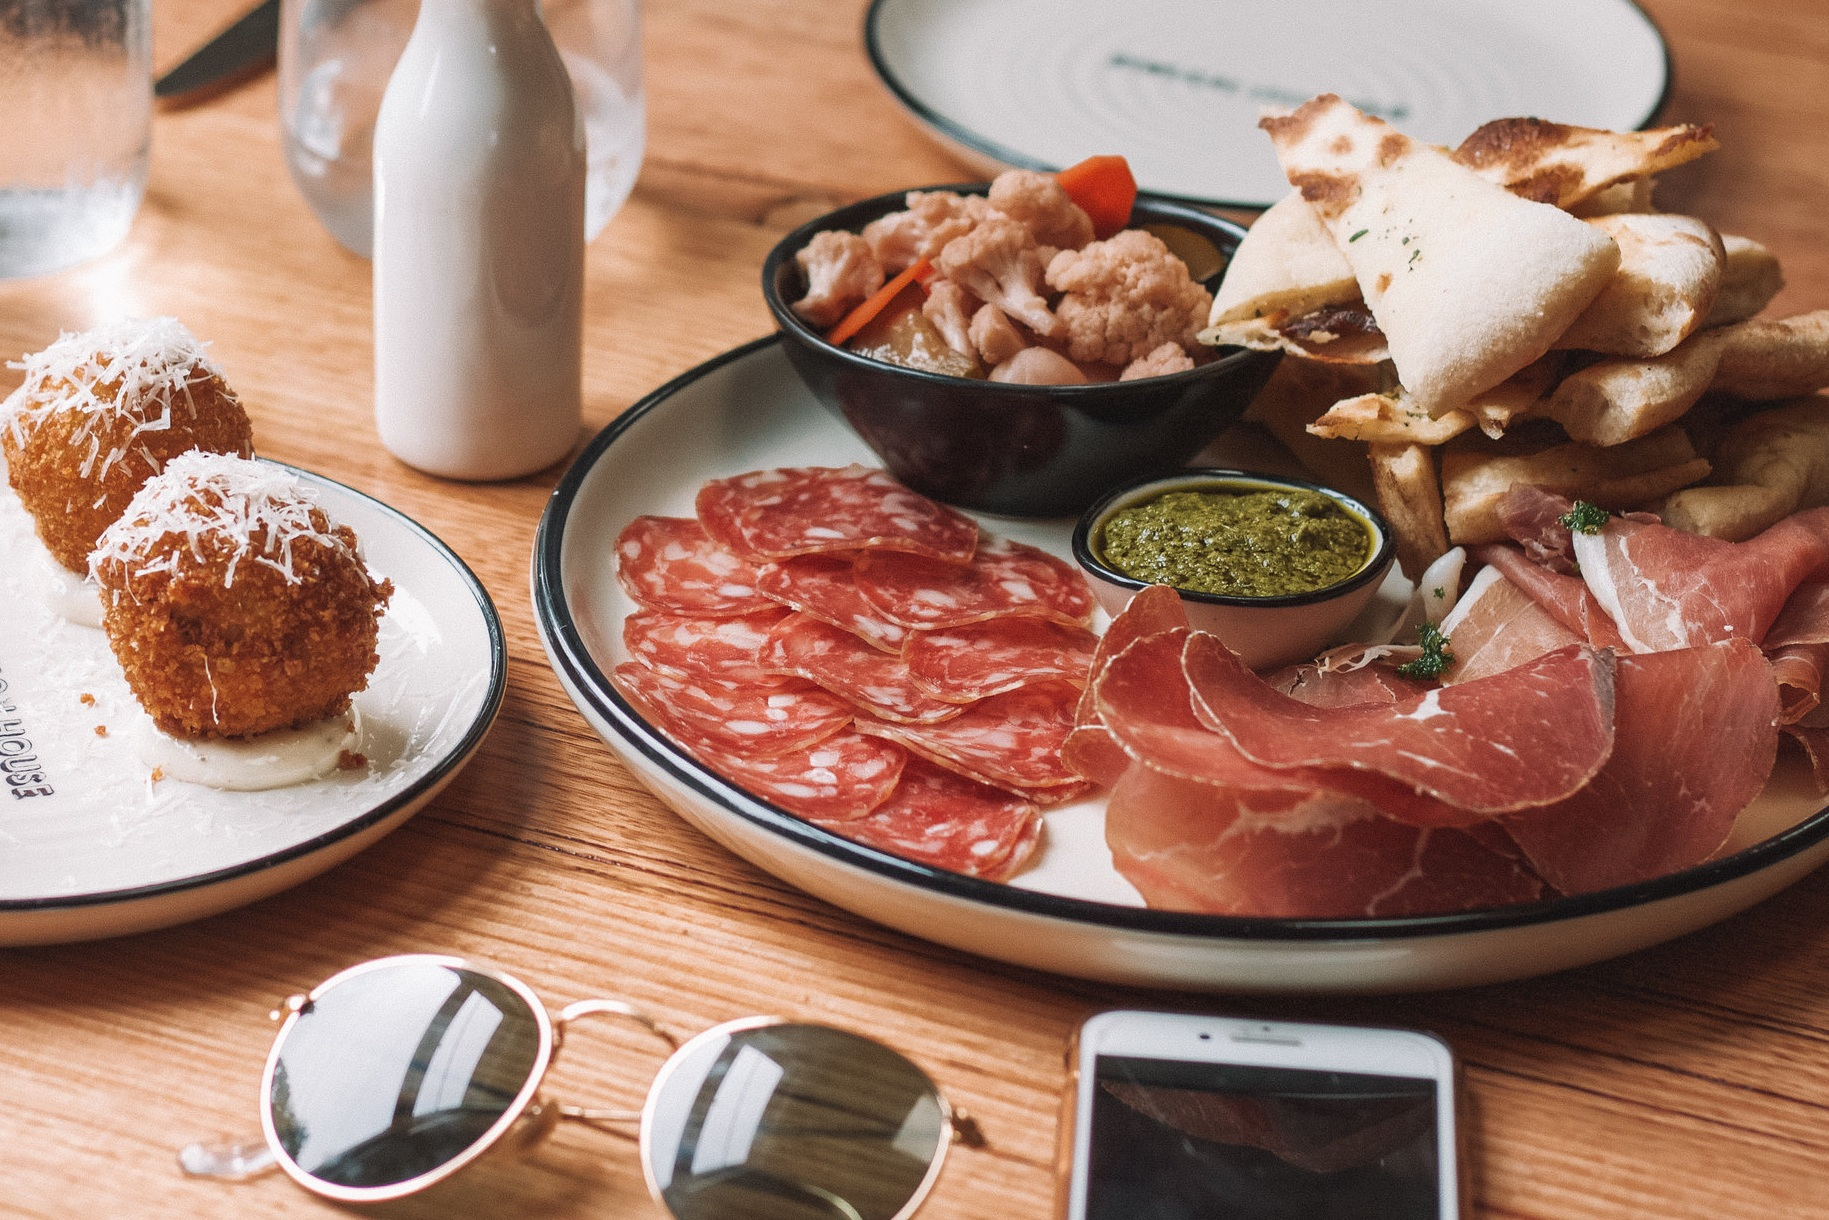 Try pairing me with tapas -